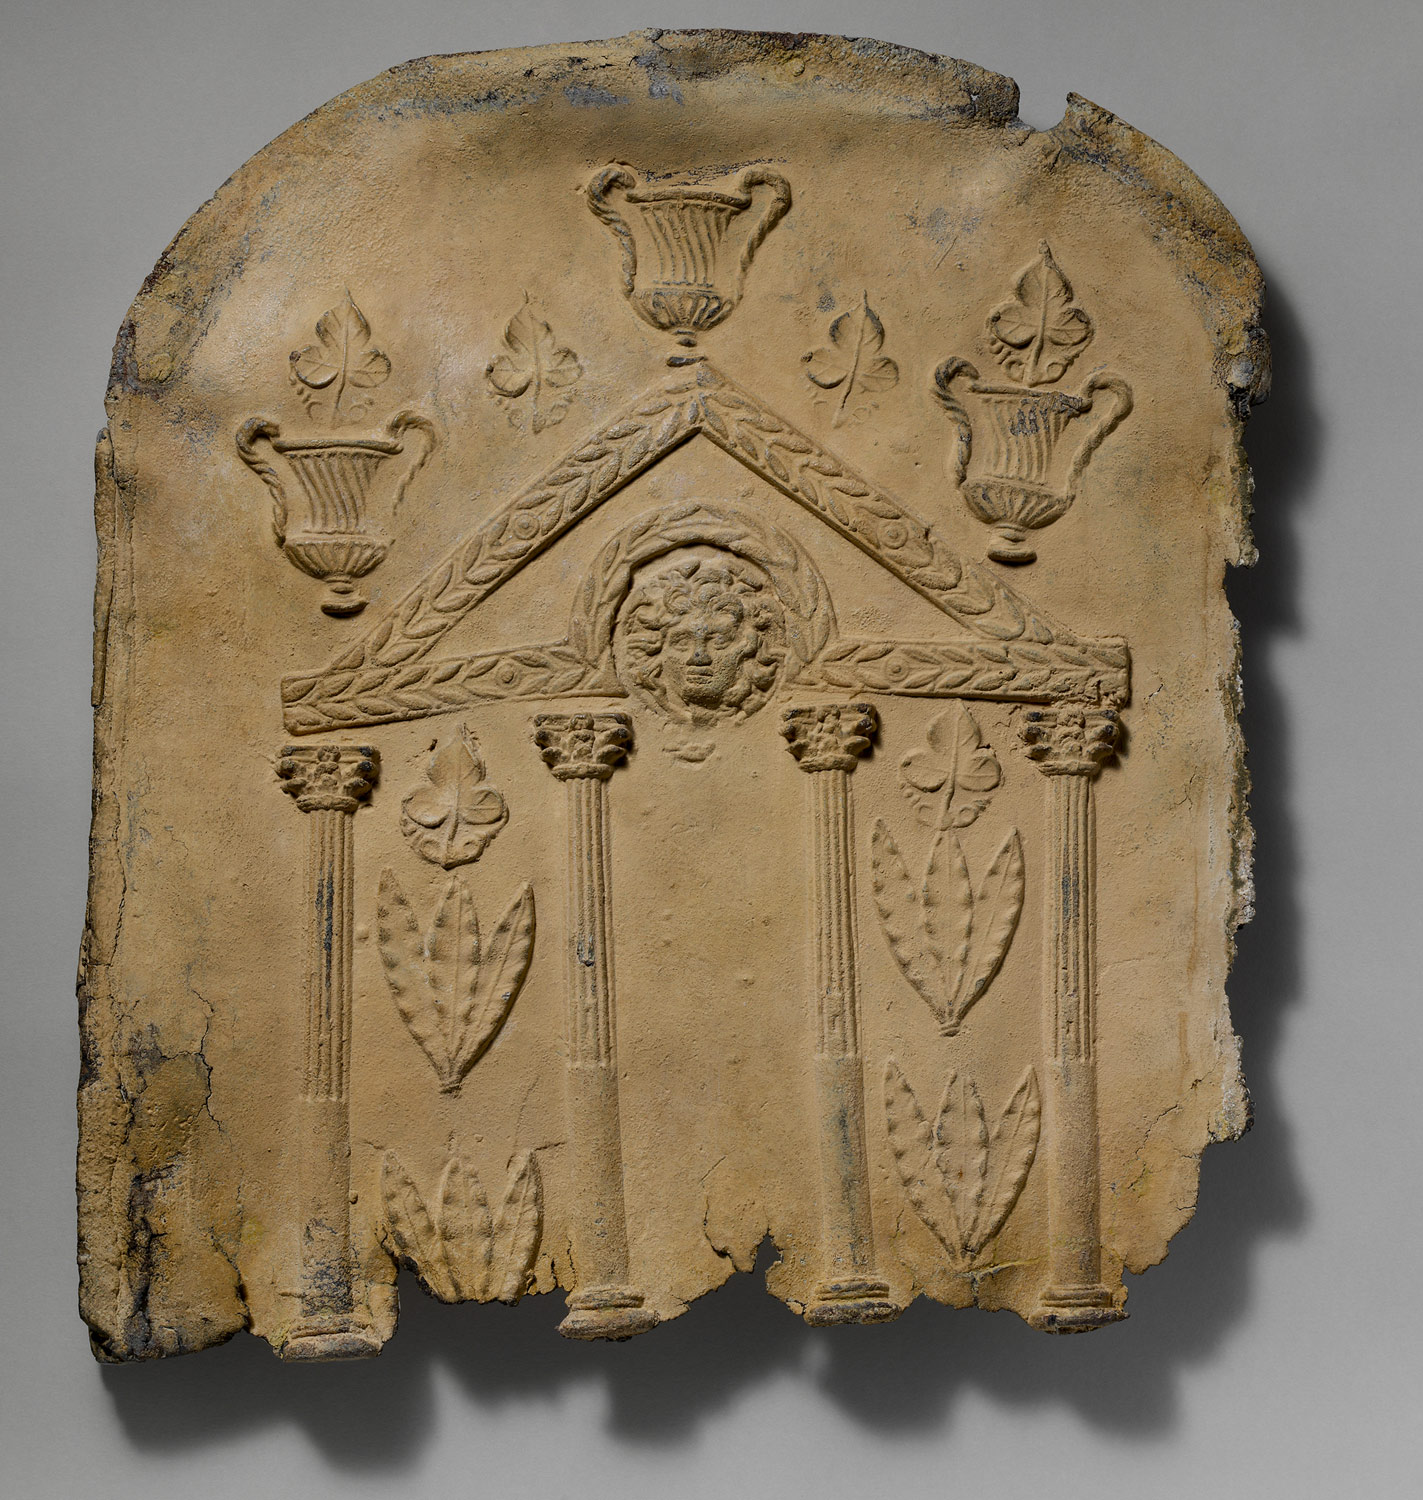 Lid and end panels of a lead sarcophagus